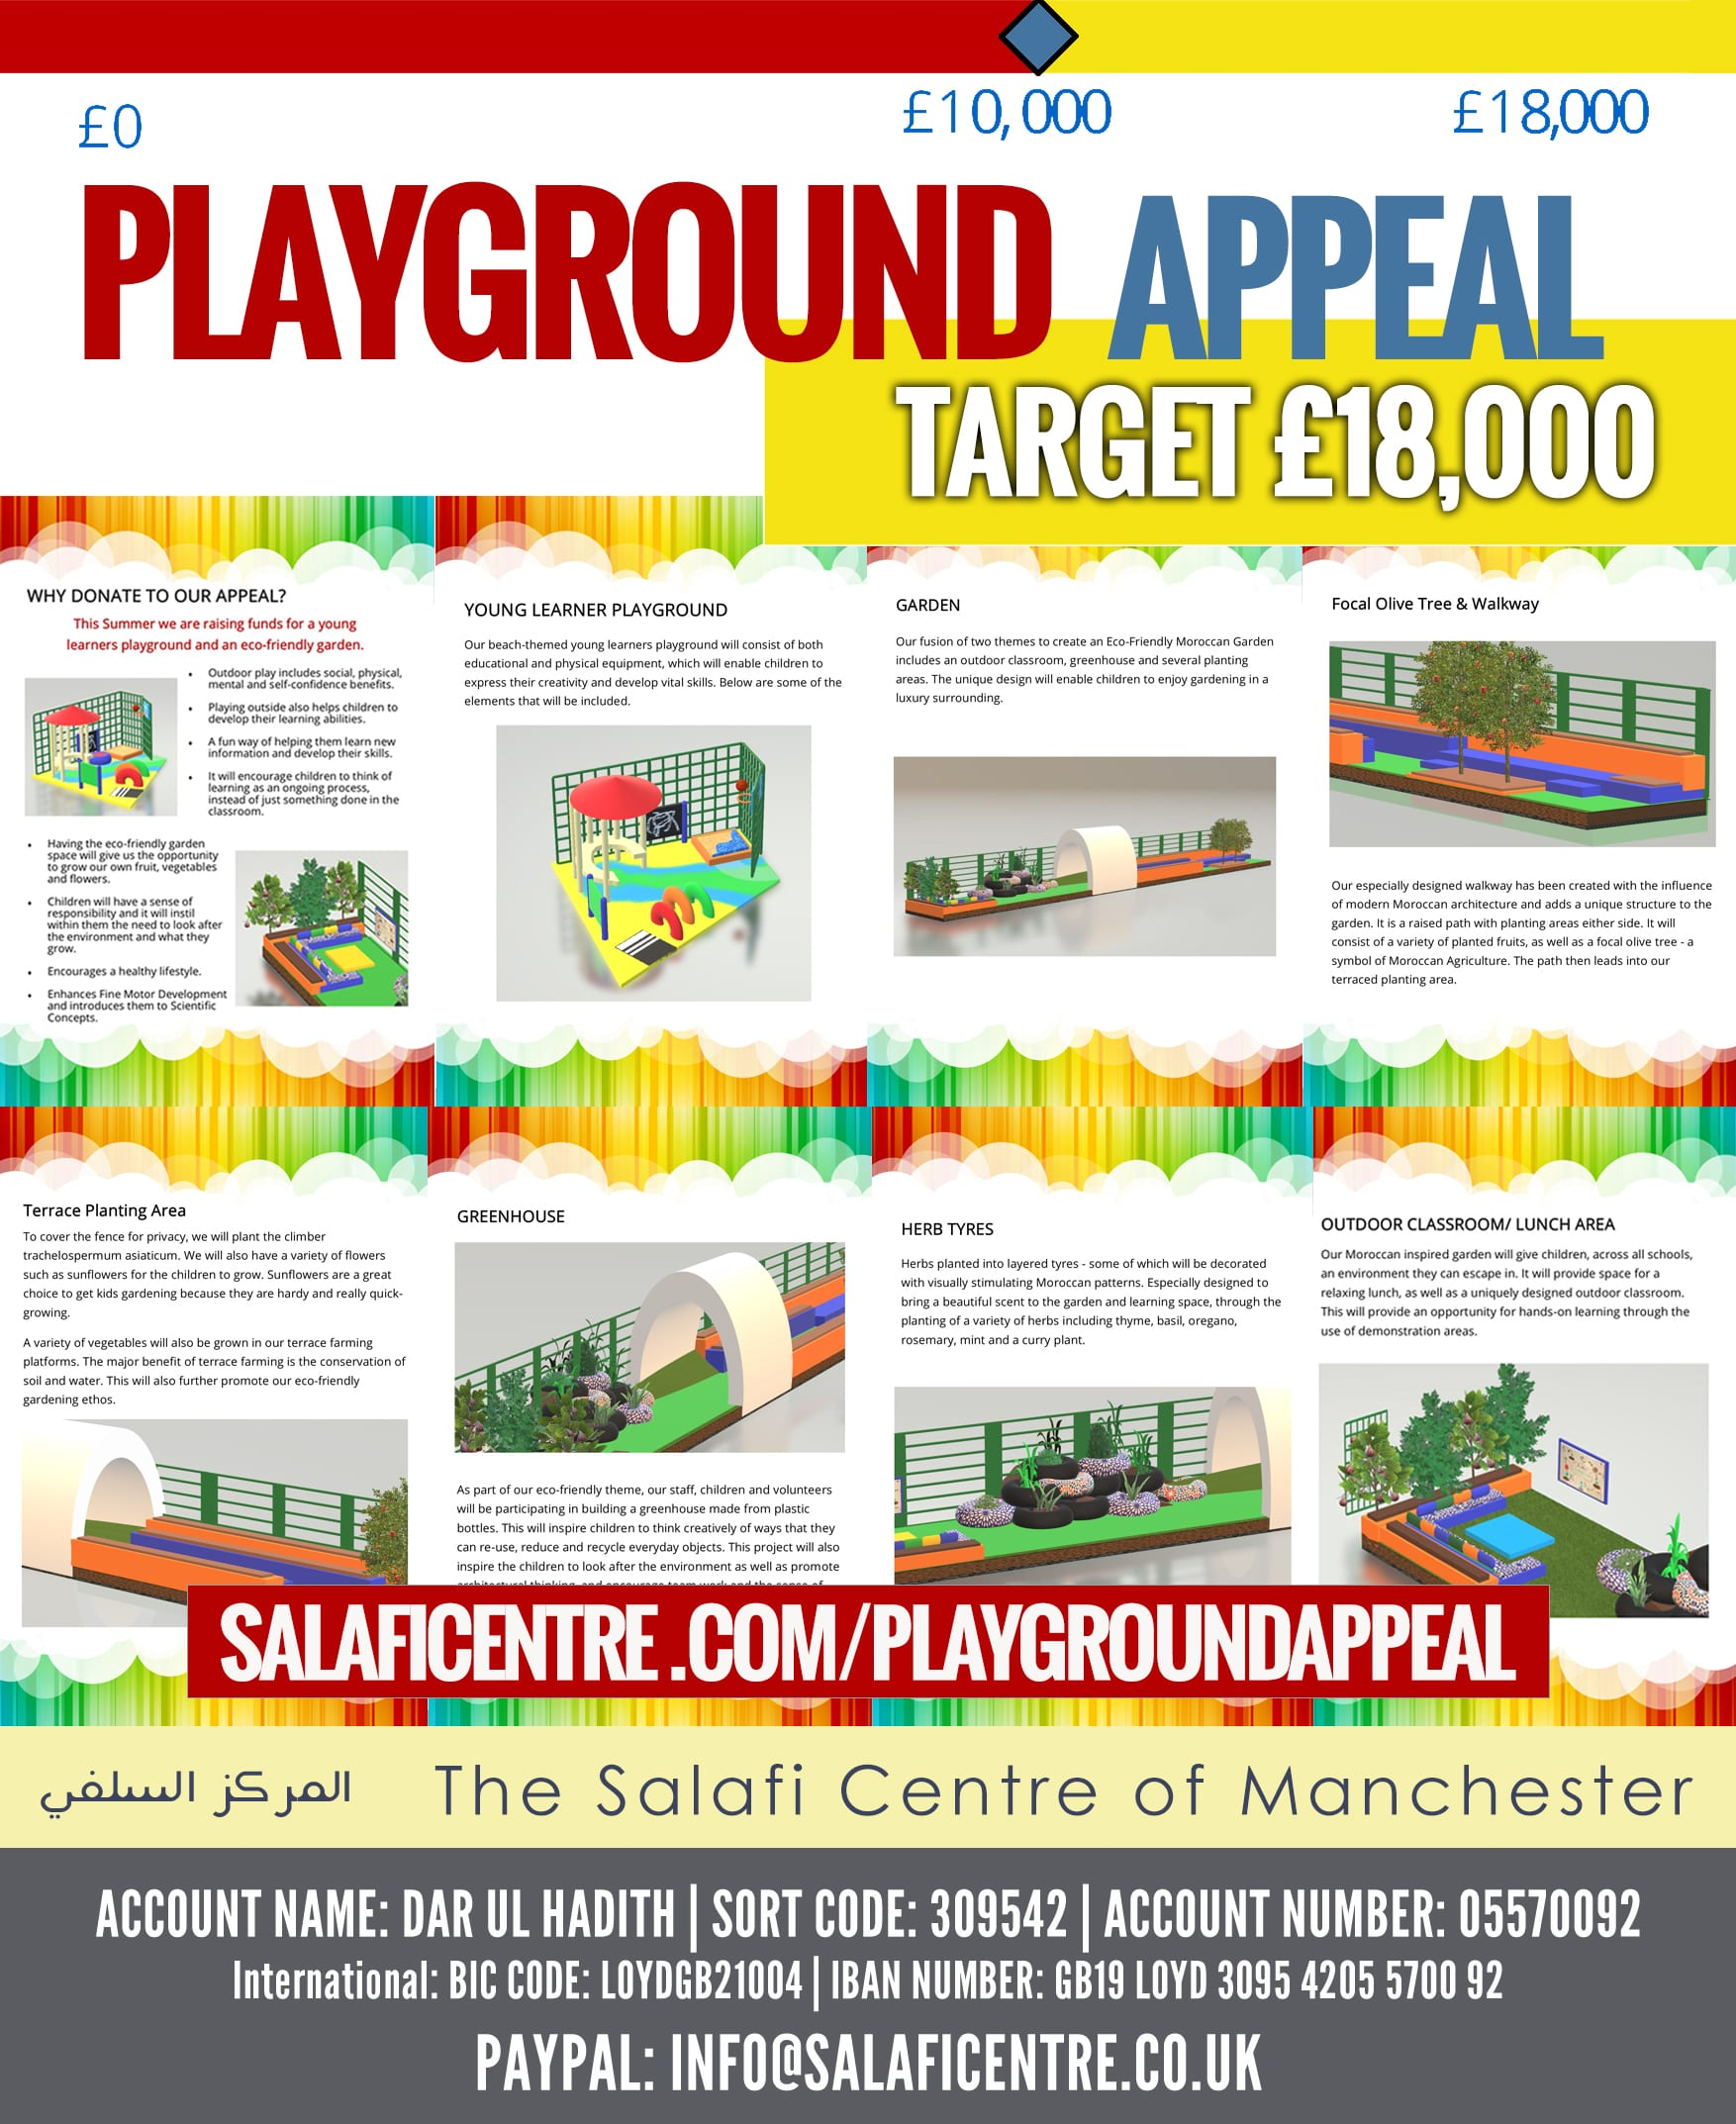 Appeal 2018 – Help Fund the New Playground Project!